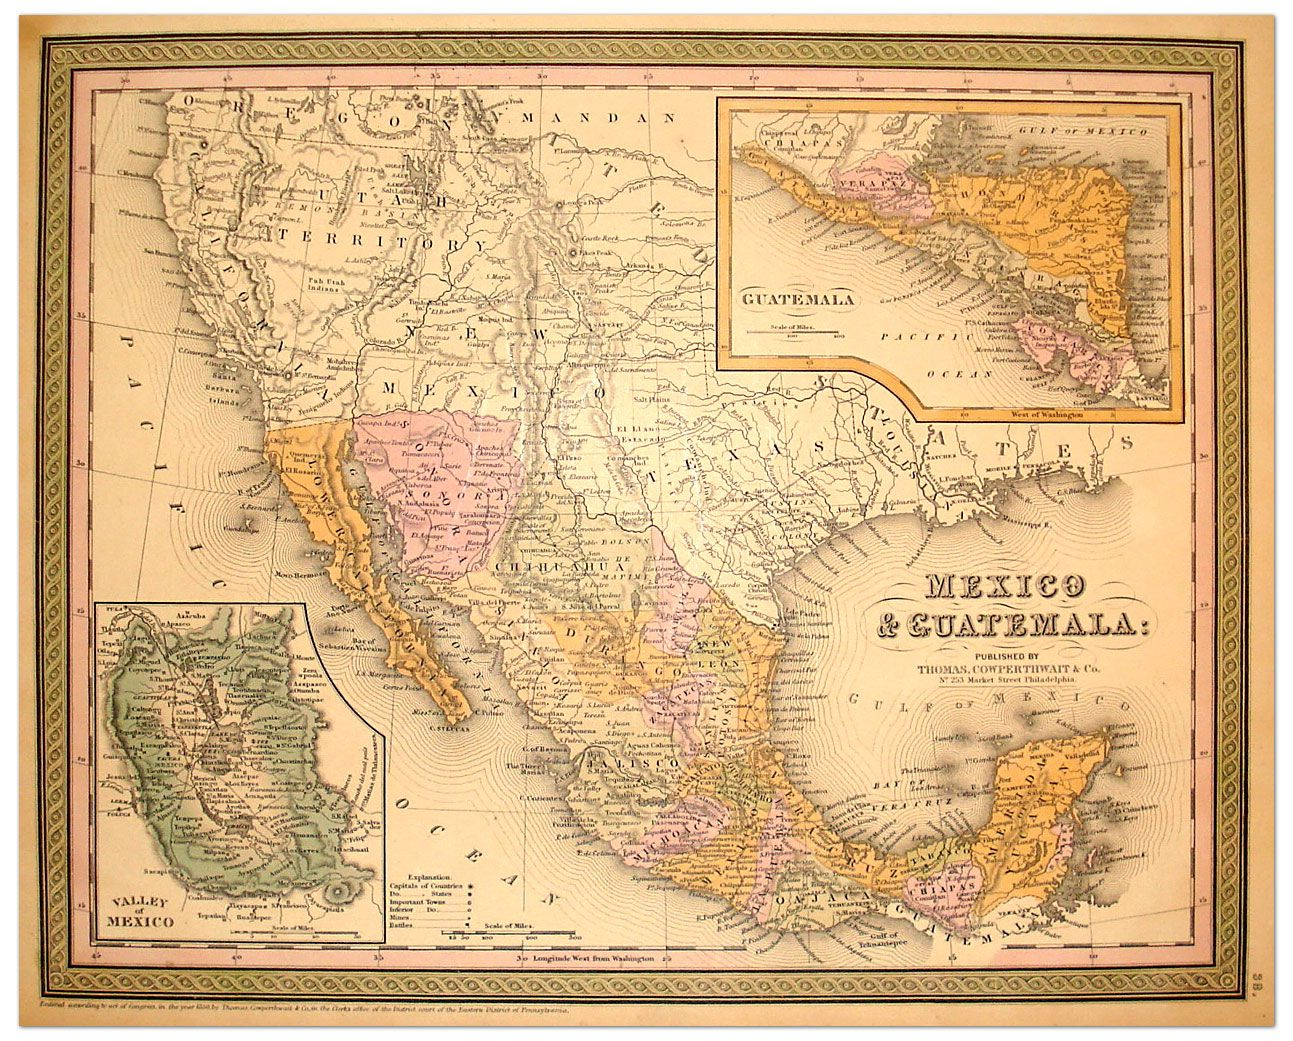 Mexico Map 1850.Mexico Map 1850 Mexico Unit Study Map Vintage Maps Old Maps